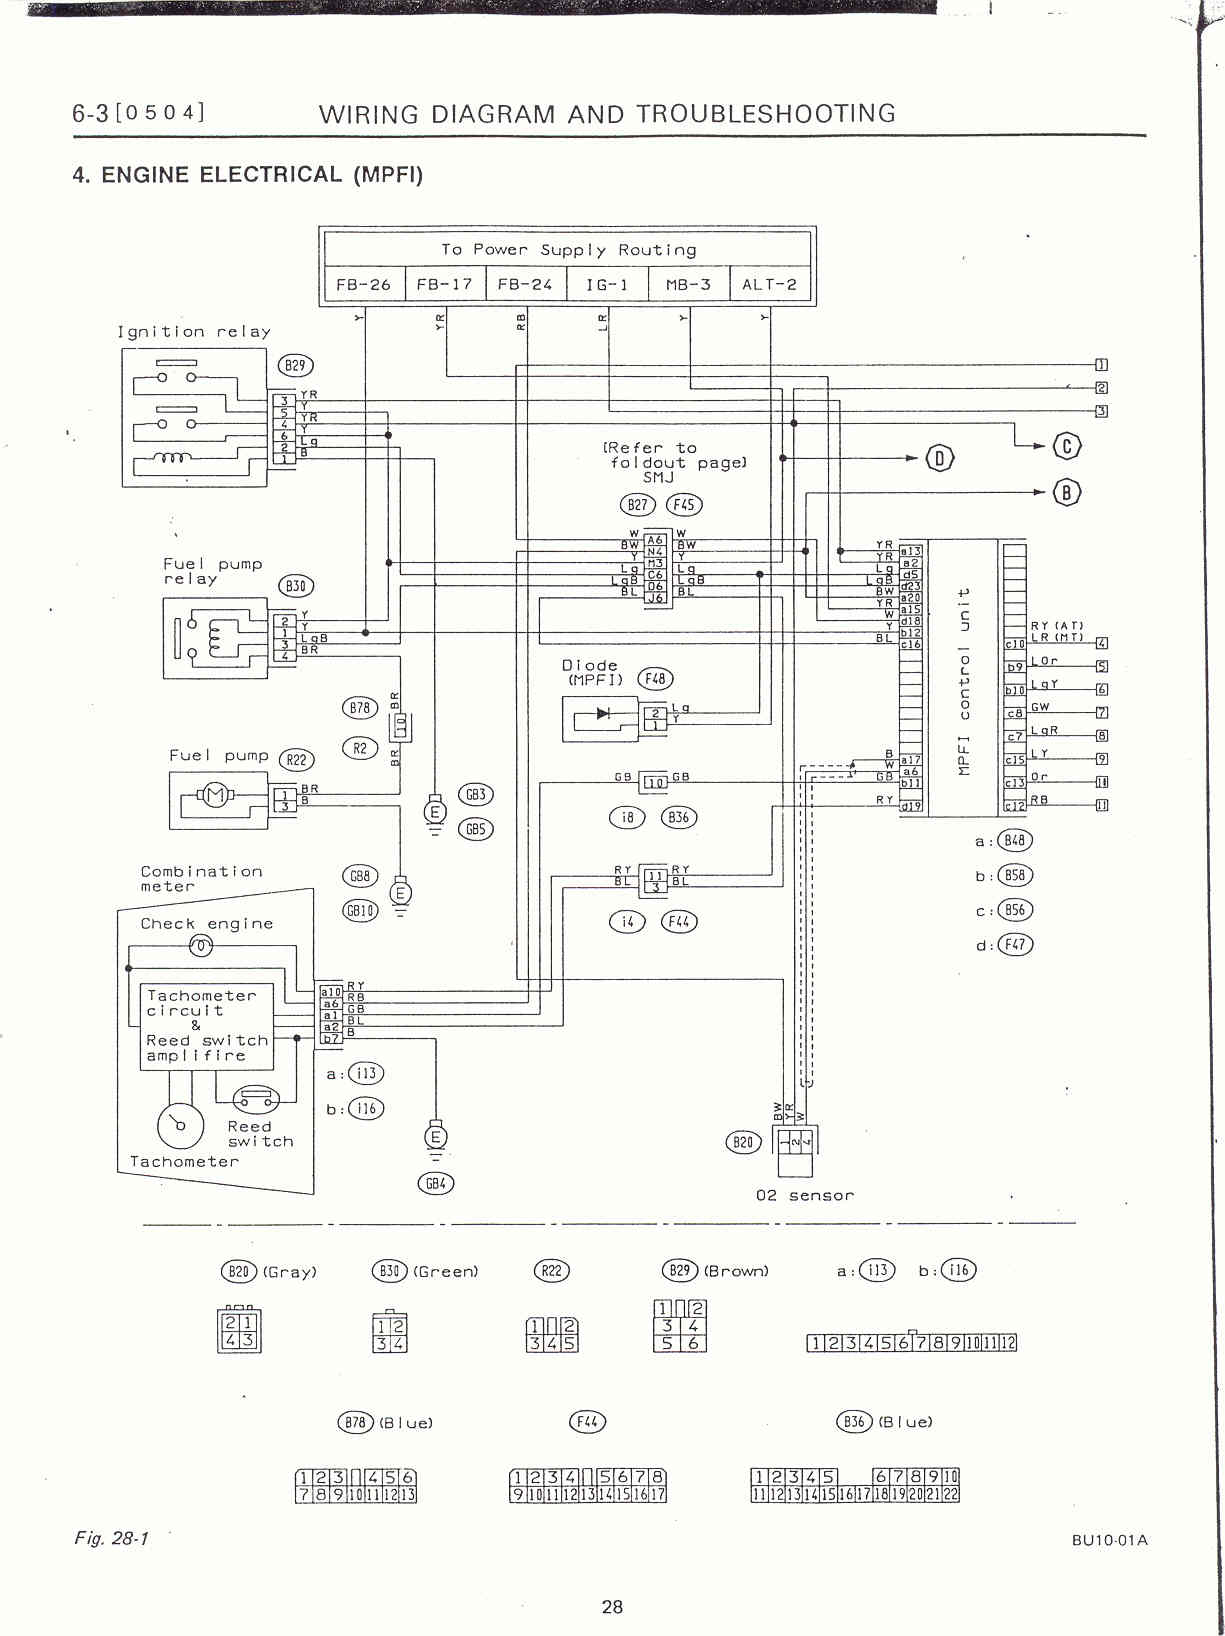 surrealmirage subaru legacy swap electrical info notes rh surrealmirage com 2004 subaru wrx wiring harness diagram 2004 subaru sti wiring harness